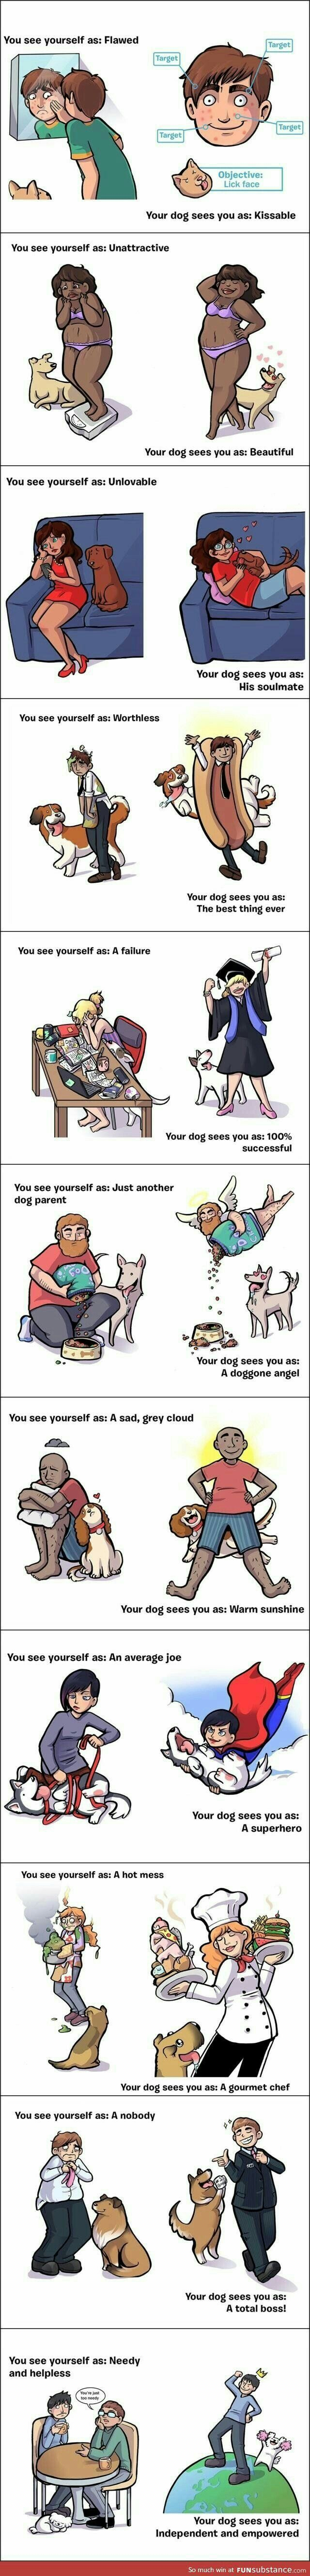 As soon as I move out and have spare time, I'd love to have a dog <3